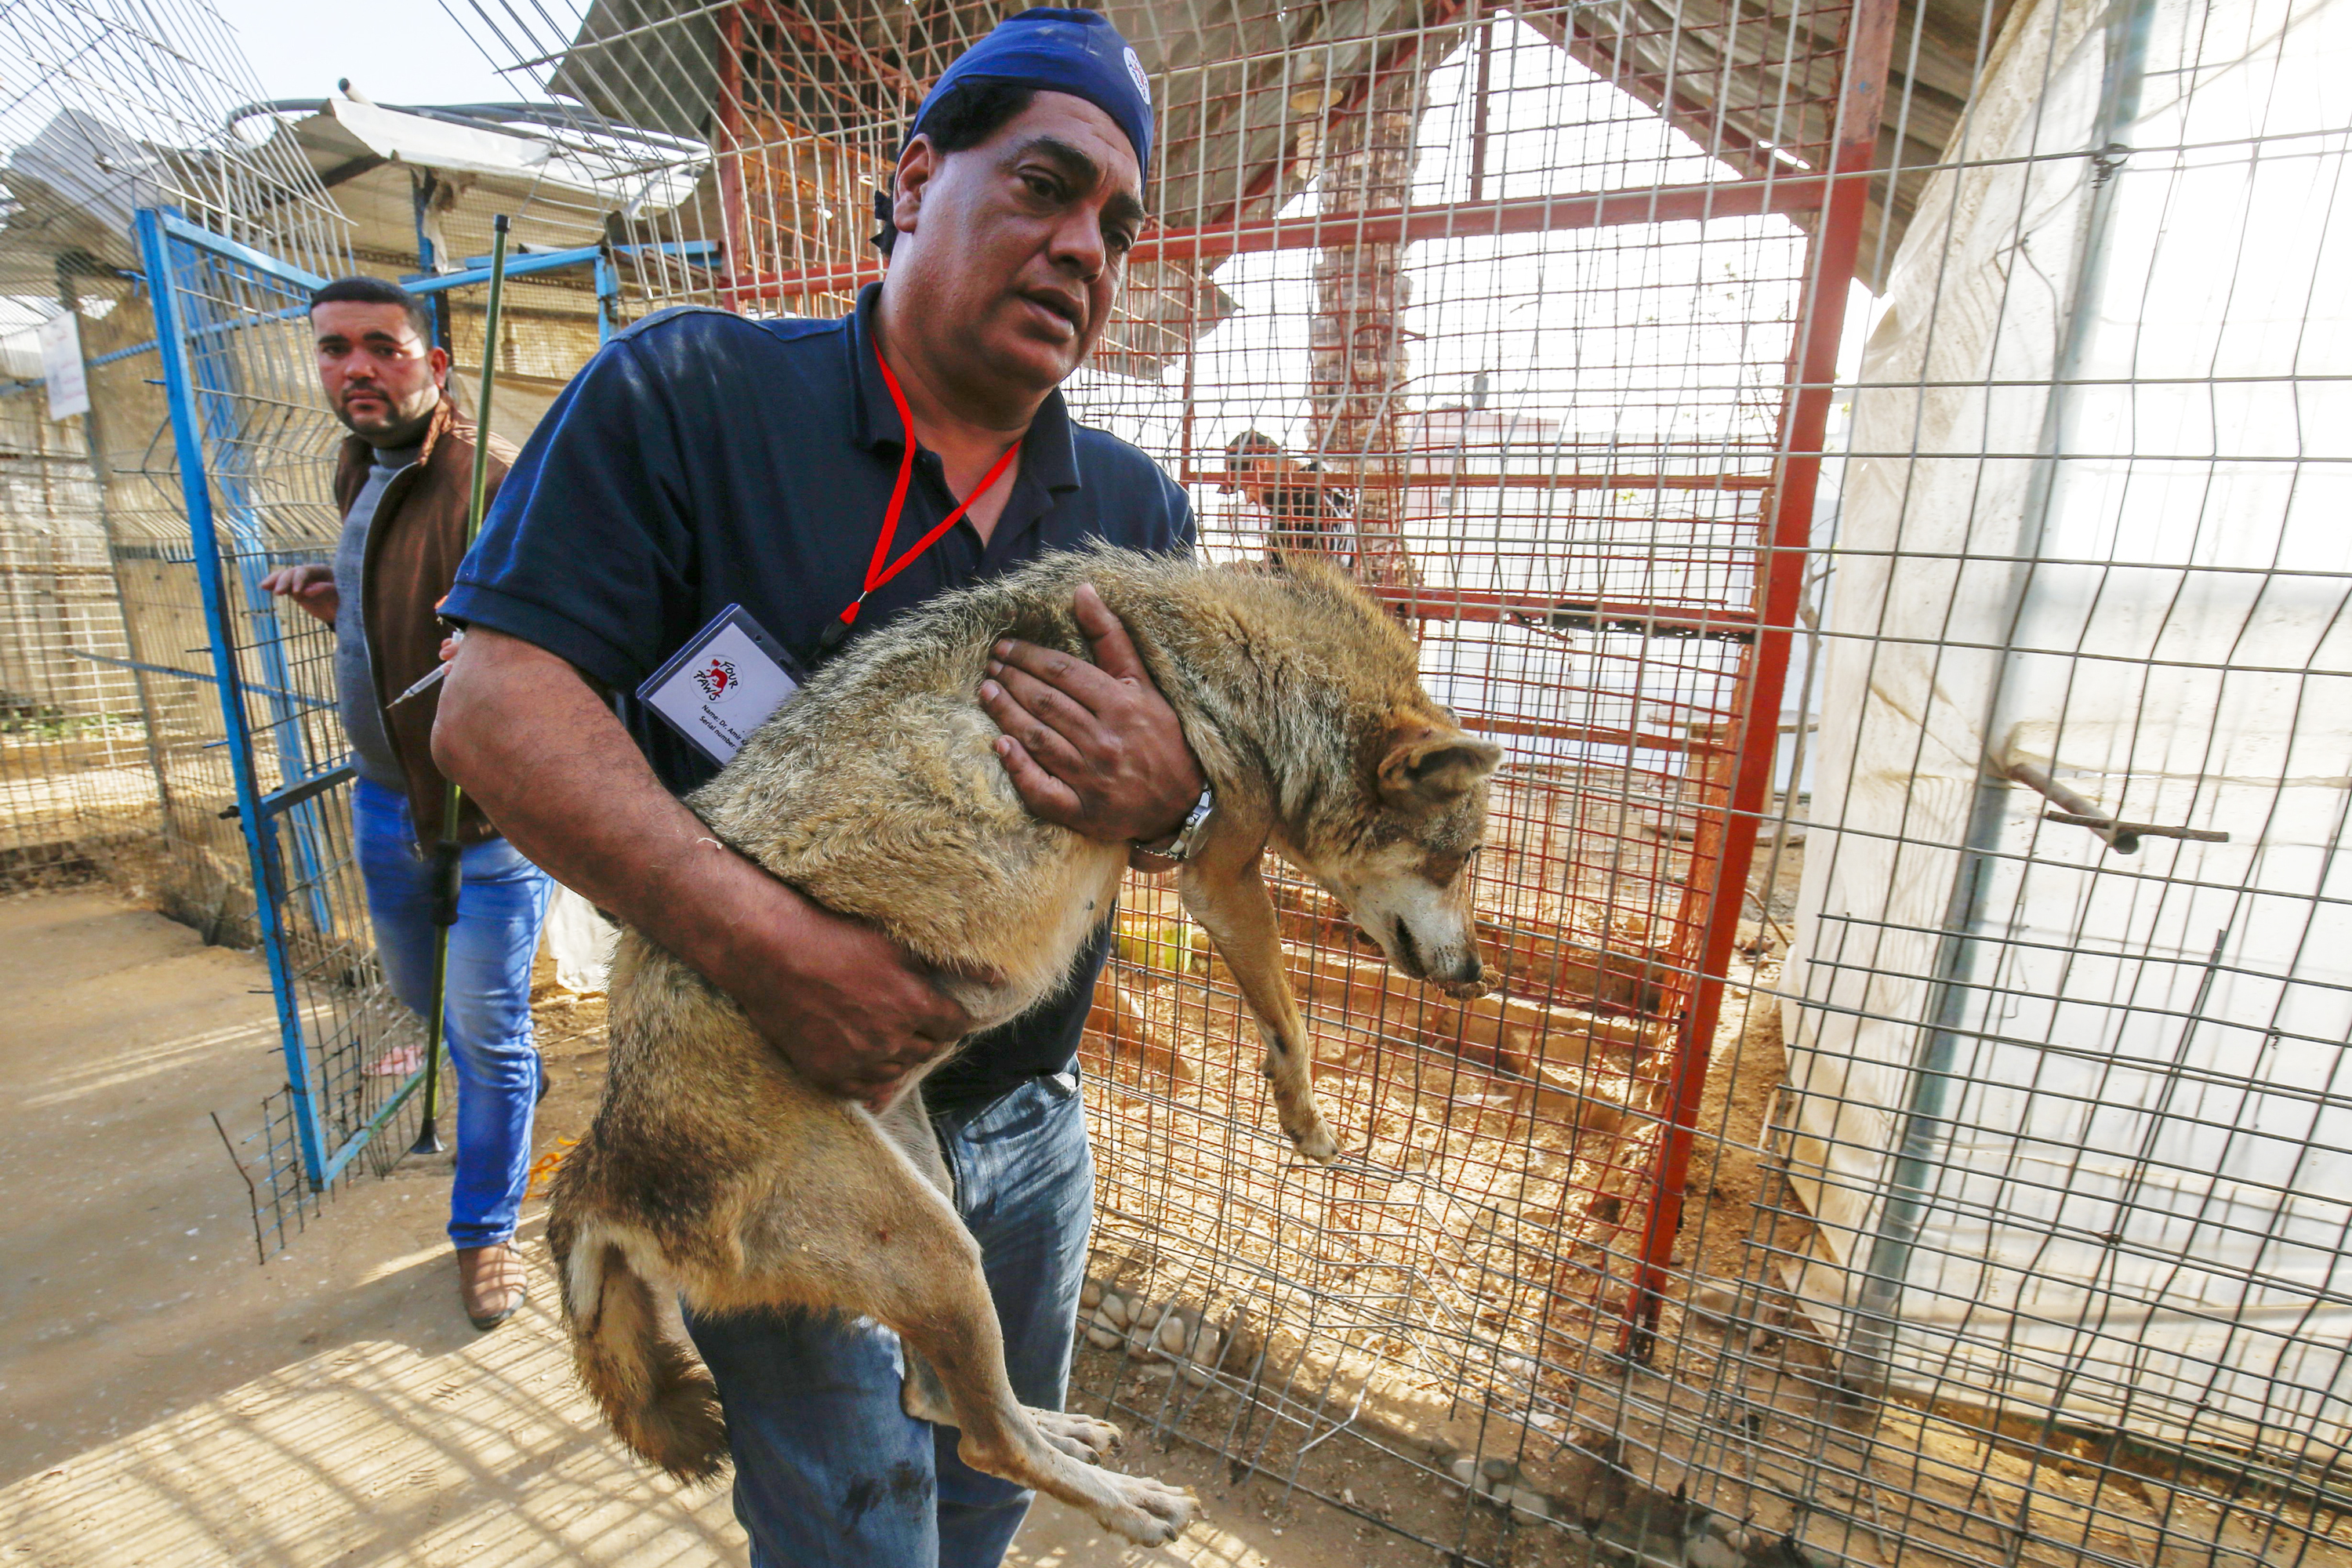 'I'm Just For Animals': The Veterinarian Who Rescues Animals From Conflict Zones